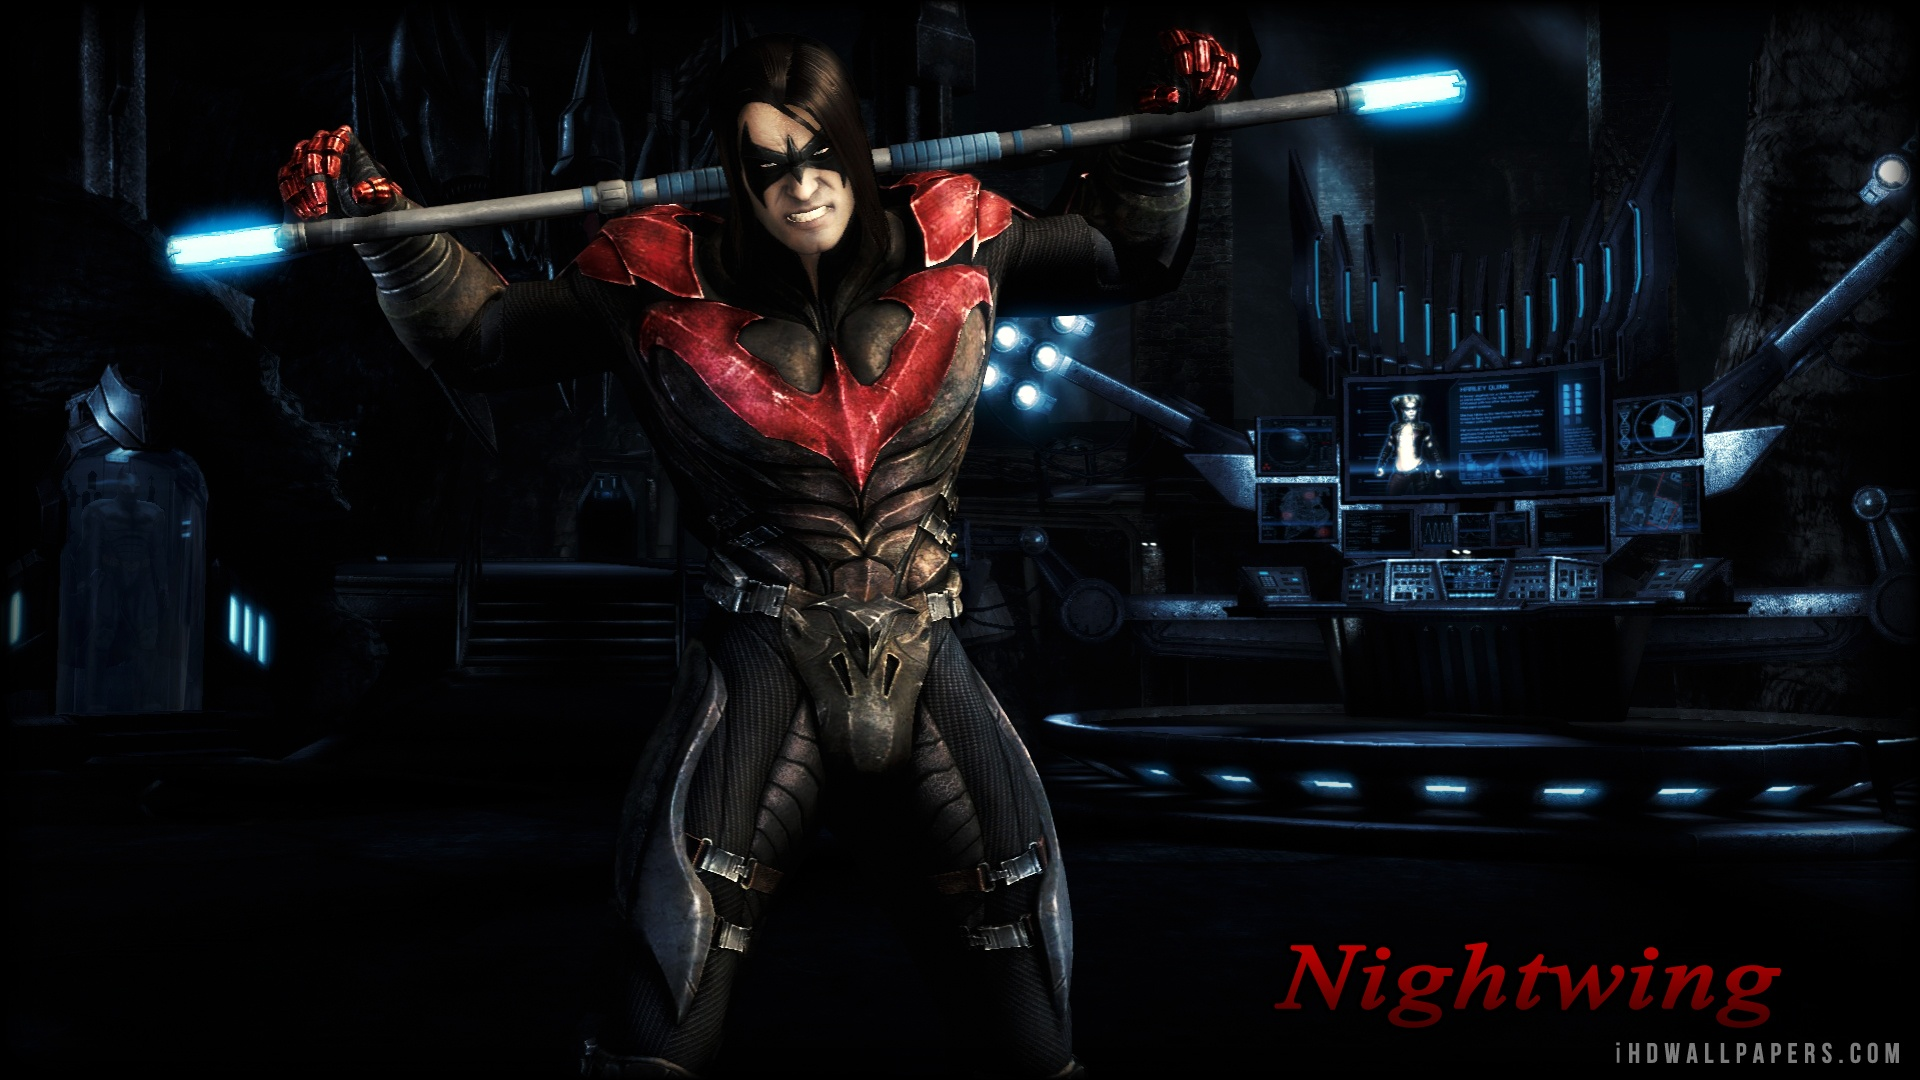 Nightwing HD Wallpaper   iHD Wallpapers 1920x1080